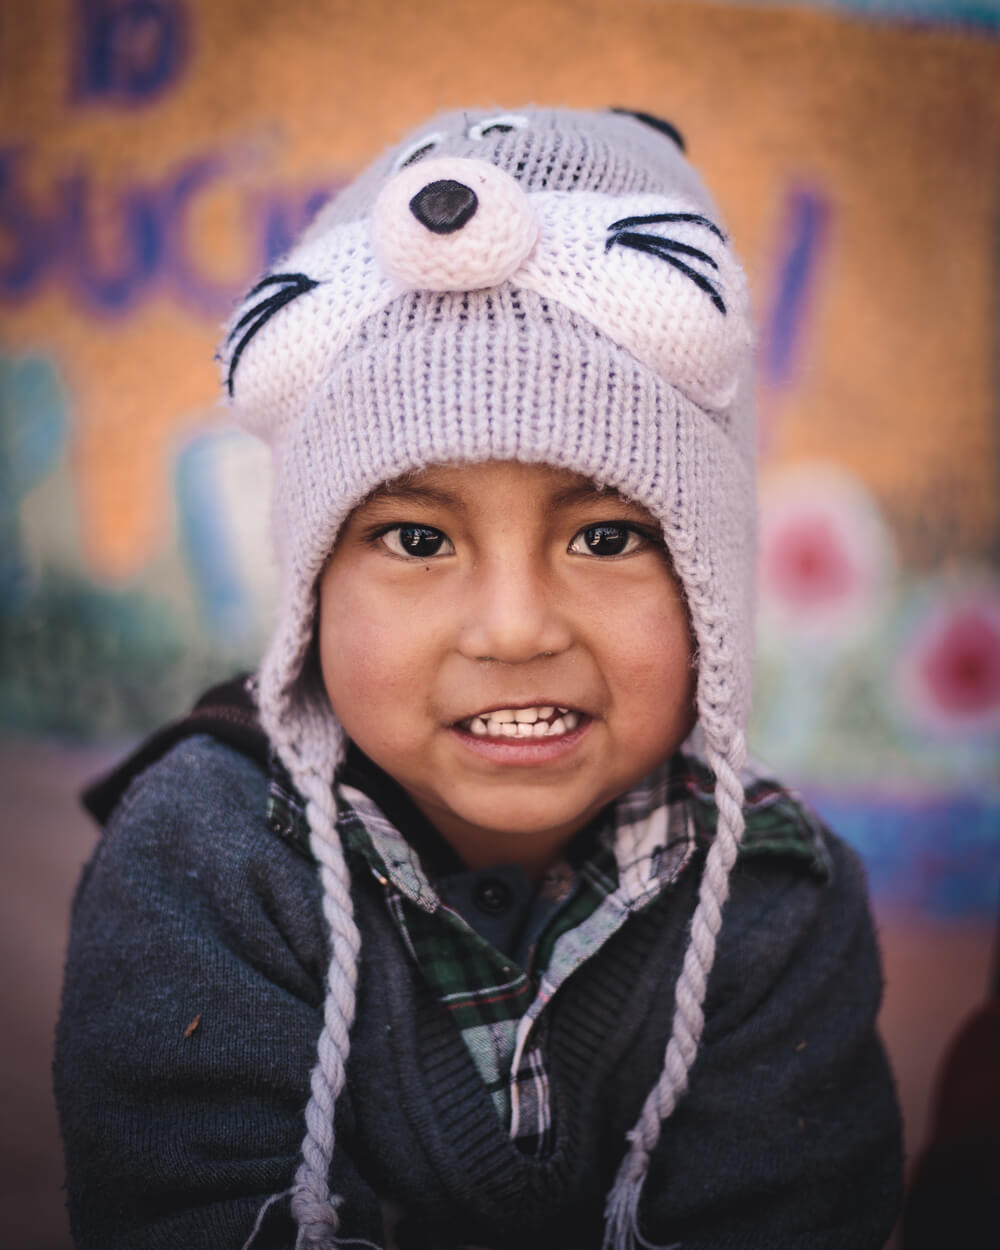 portrait of a Peruvian kid. Image by Jordan Hammond